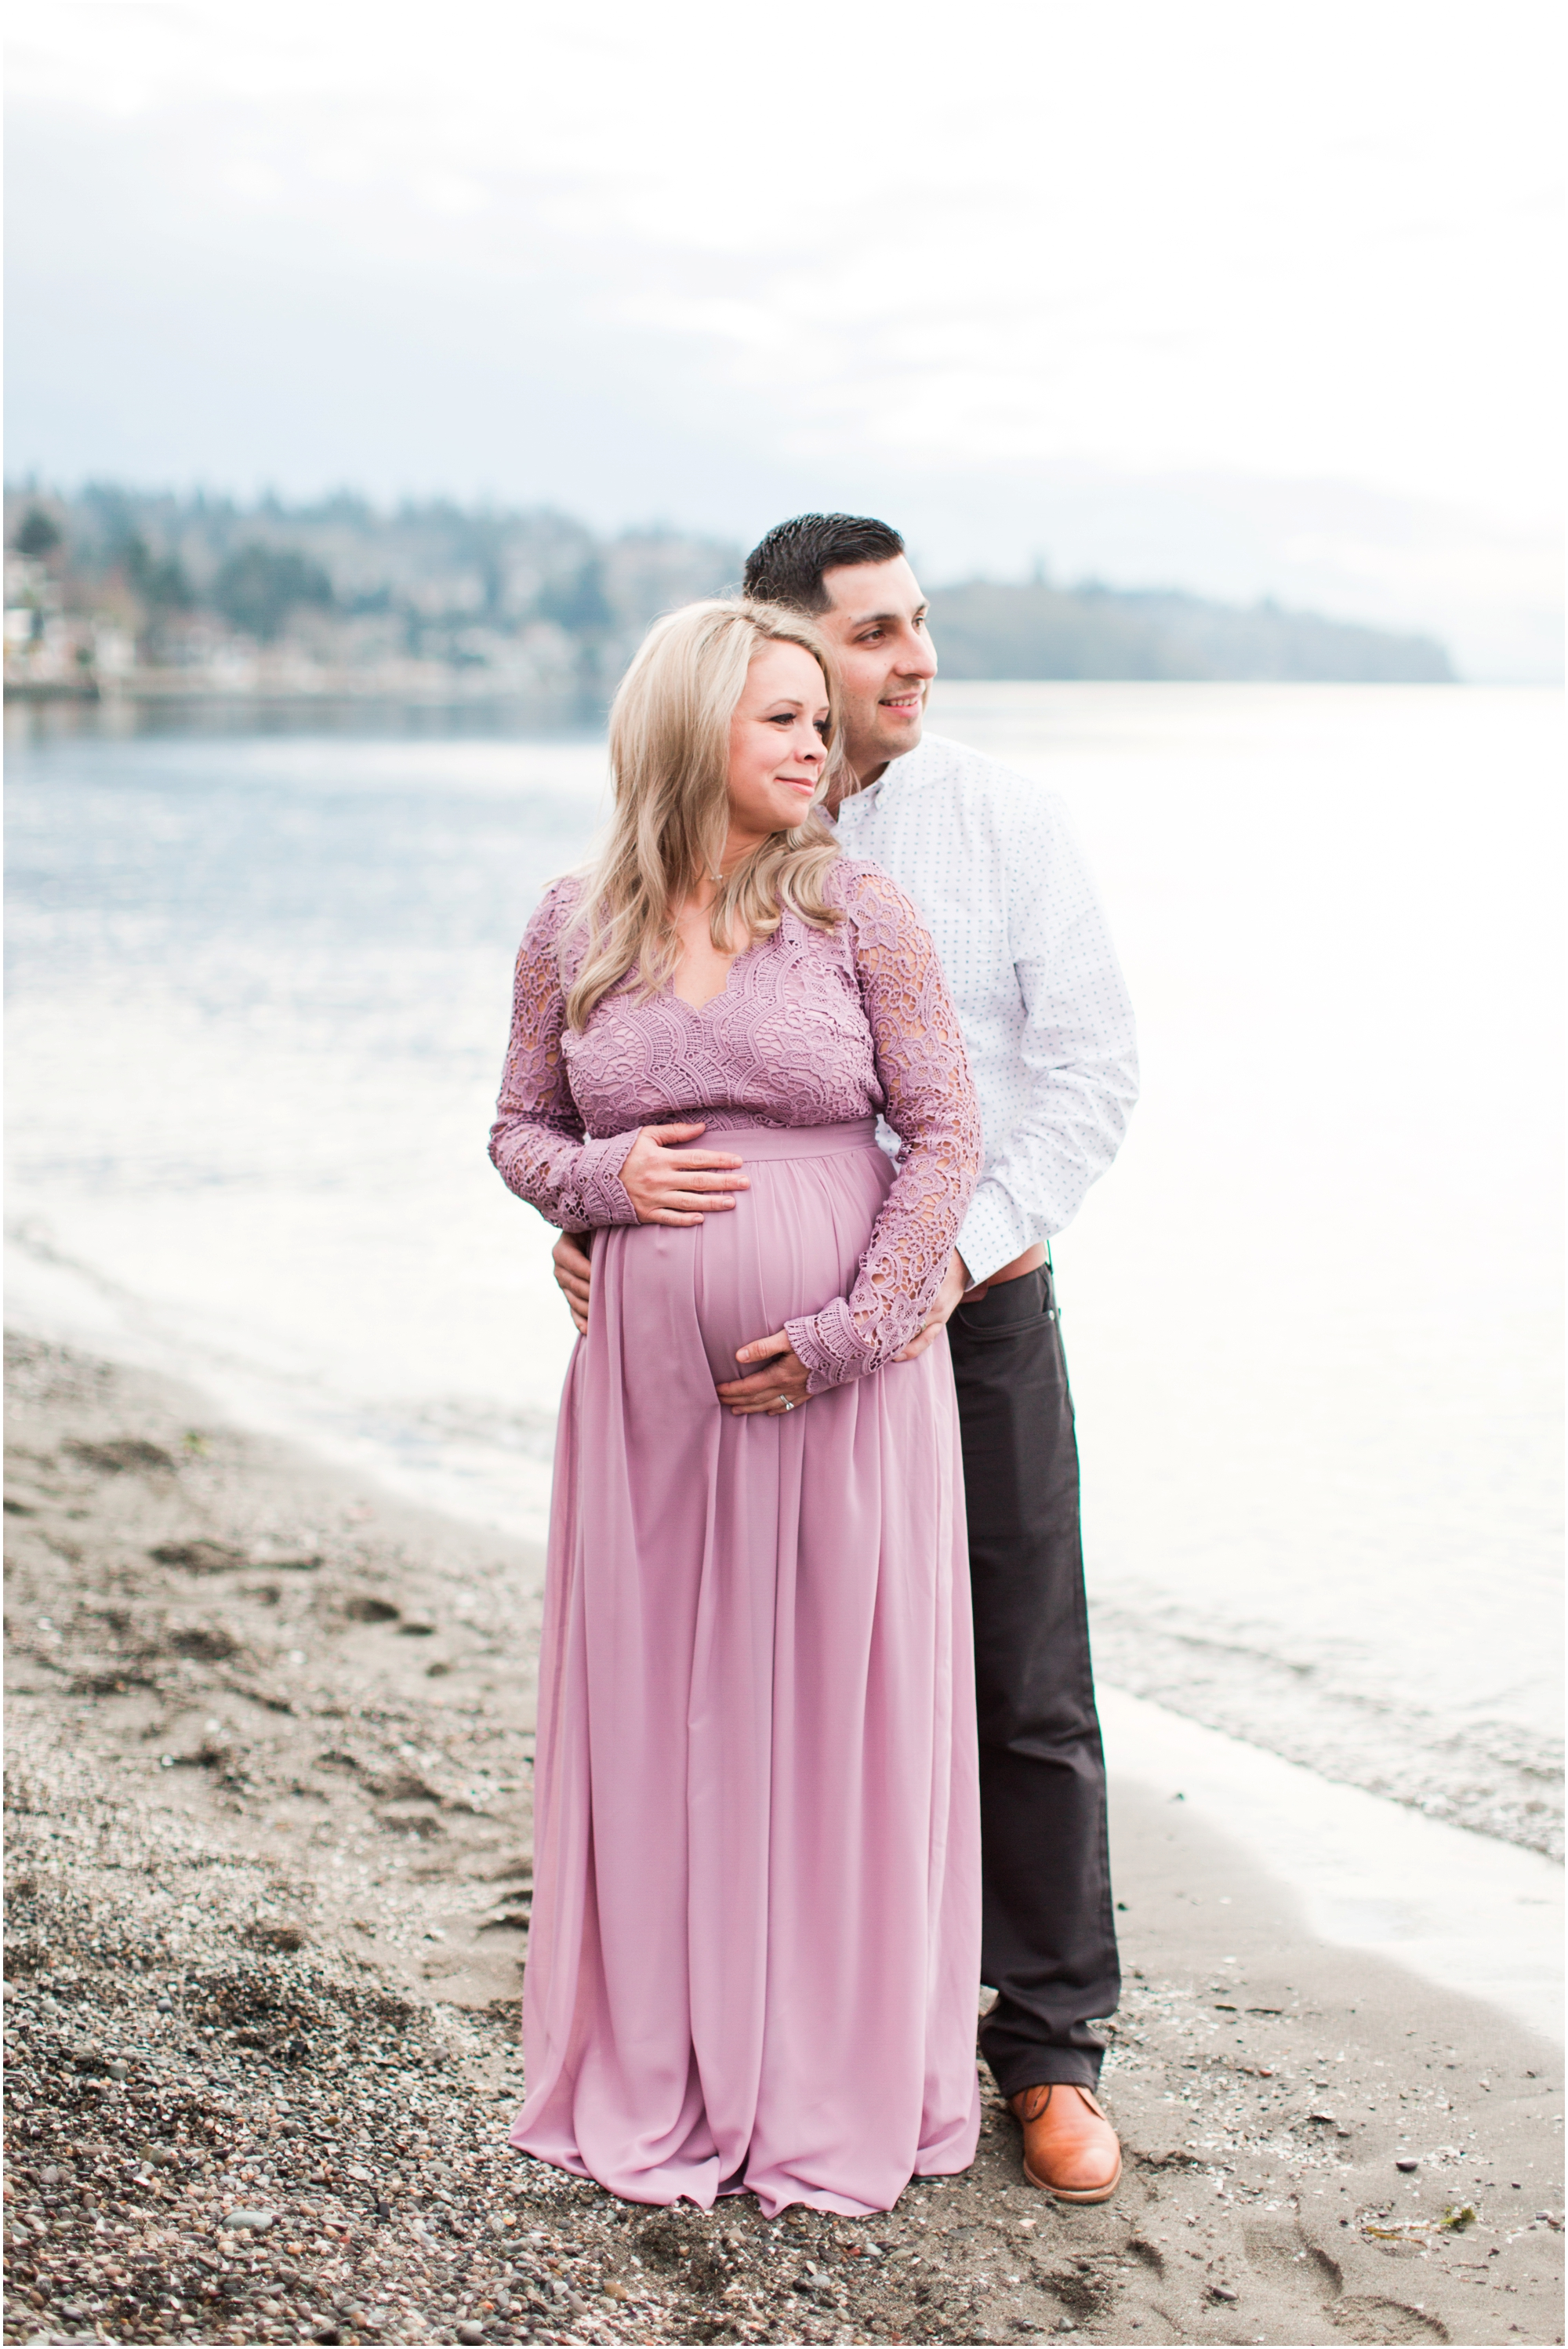 Maternity photos by Briana Calderon Photography based in the Greater Seattle & Tacoma, WA_0989.jpg